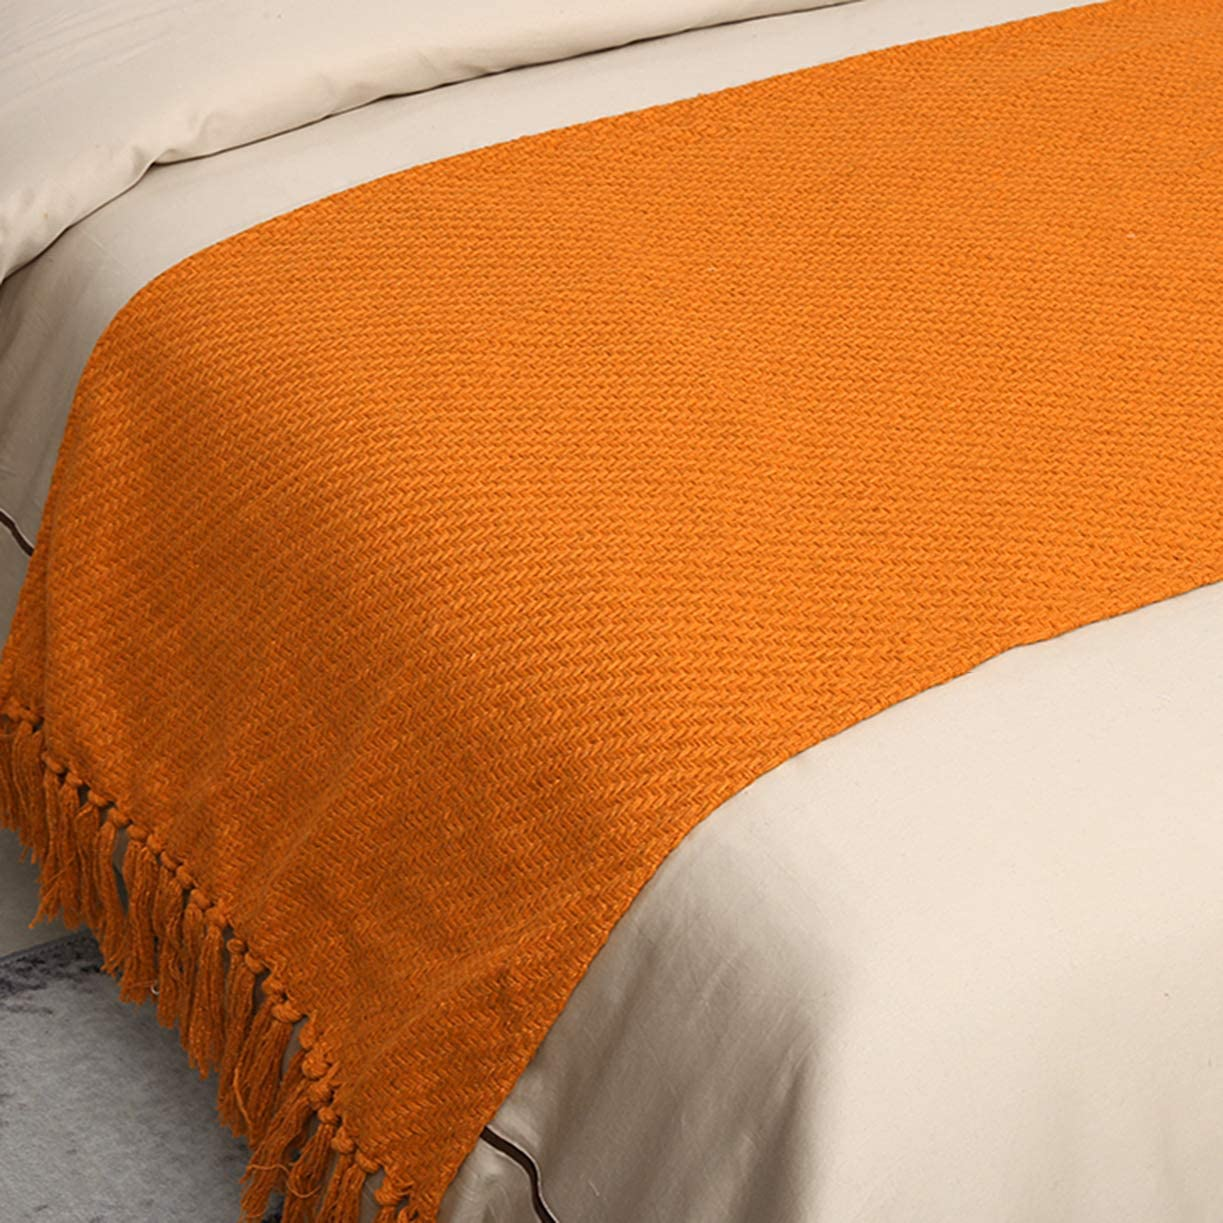 Year-end annual account BAM - Store Knitting Blankets with Runner Mod Dedication Bed Tassel Luxury